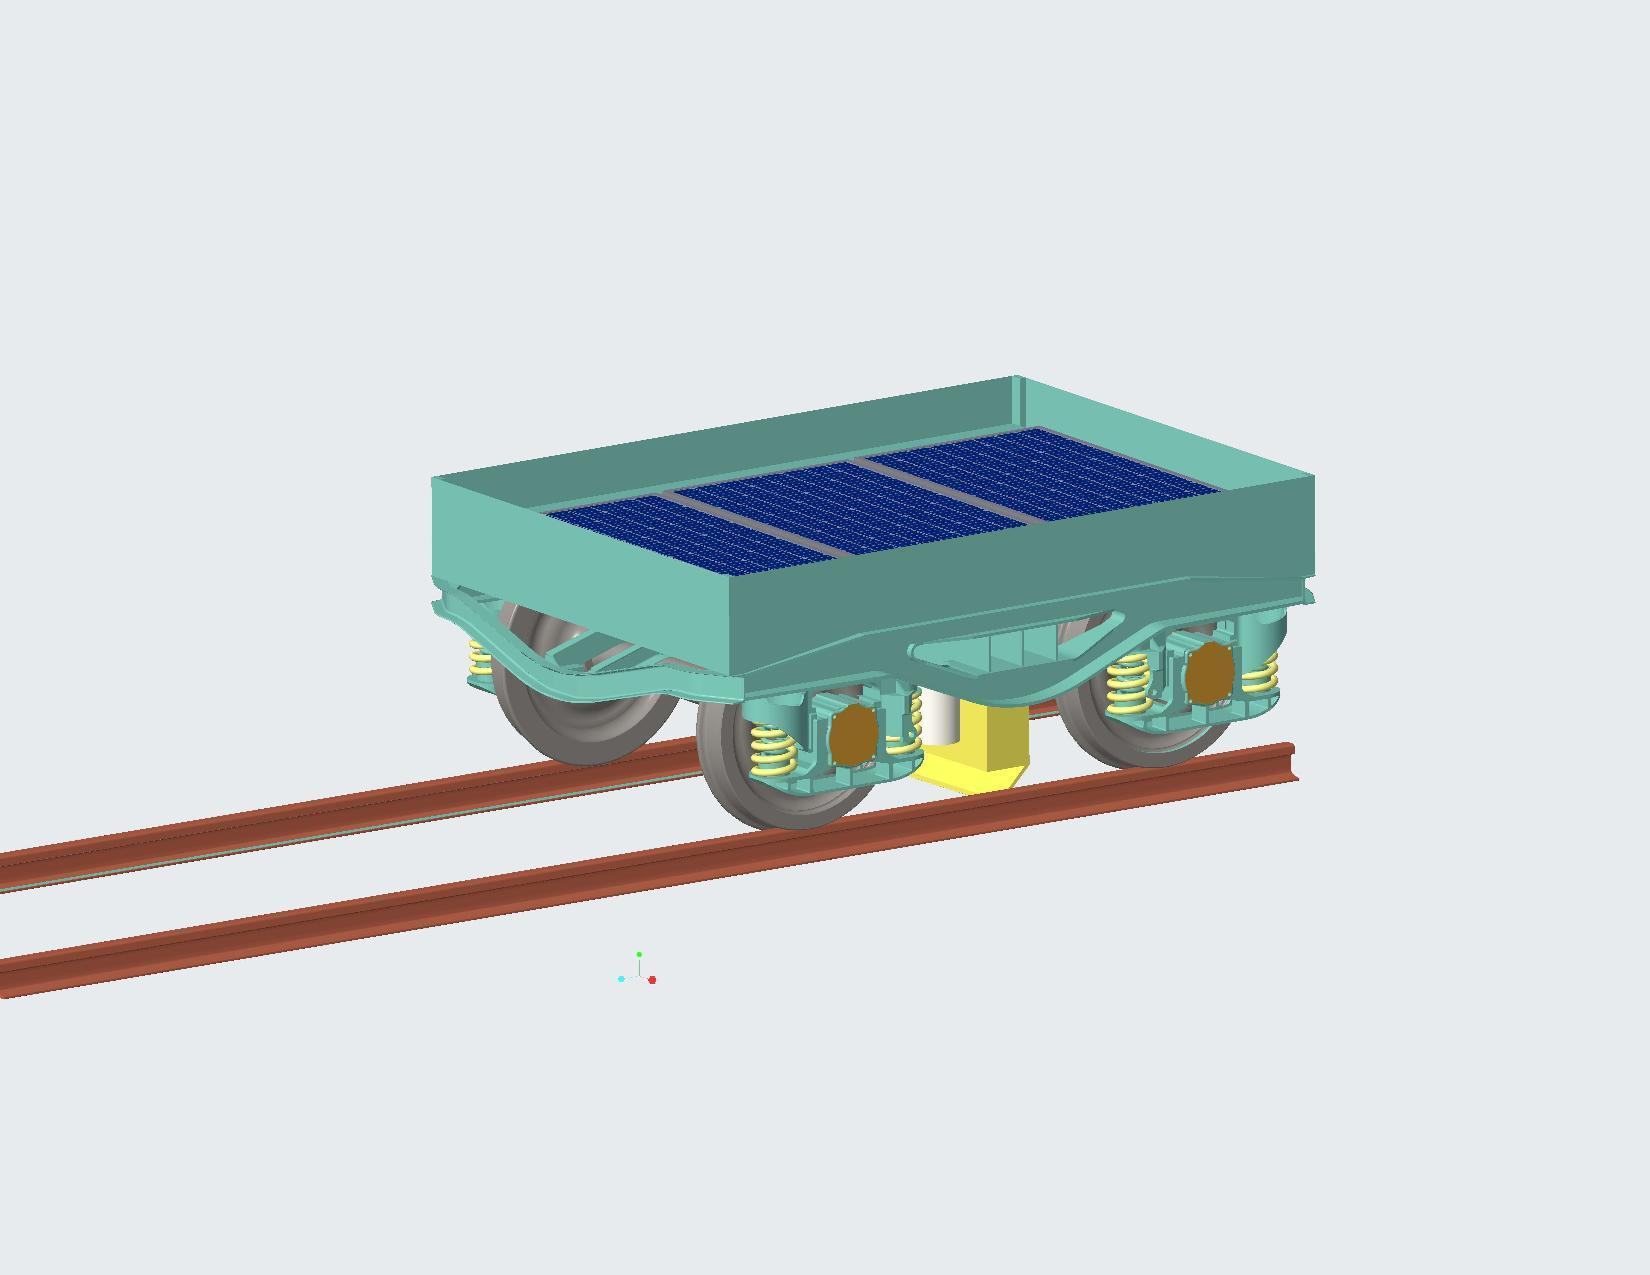 isometric-page-001 (1).jpg Download STL file Railway automatic cleaning system • 3D printing model, brijenggworks